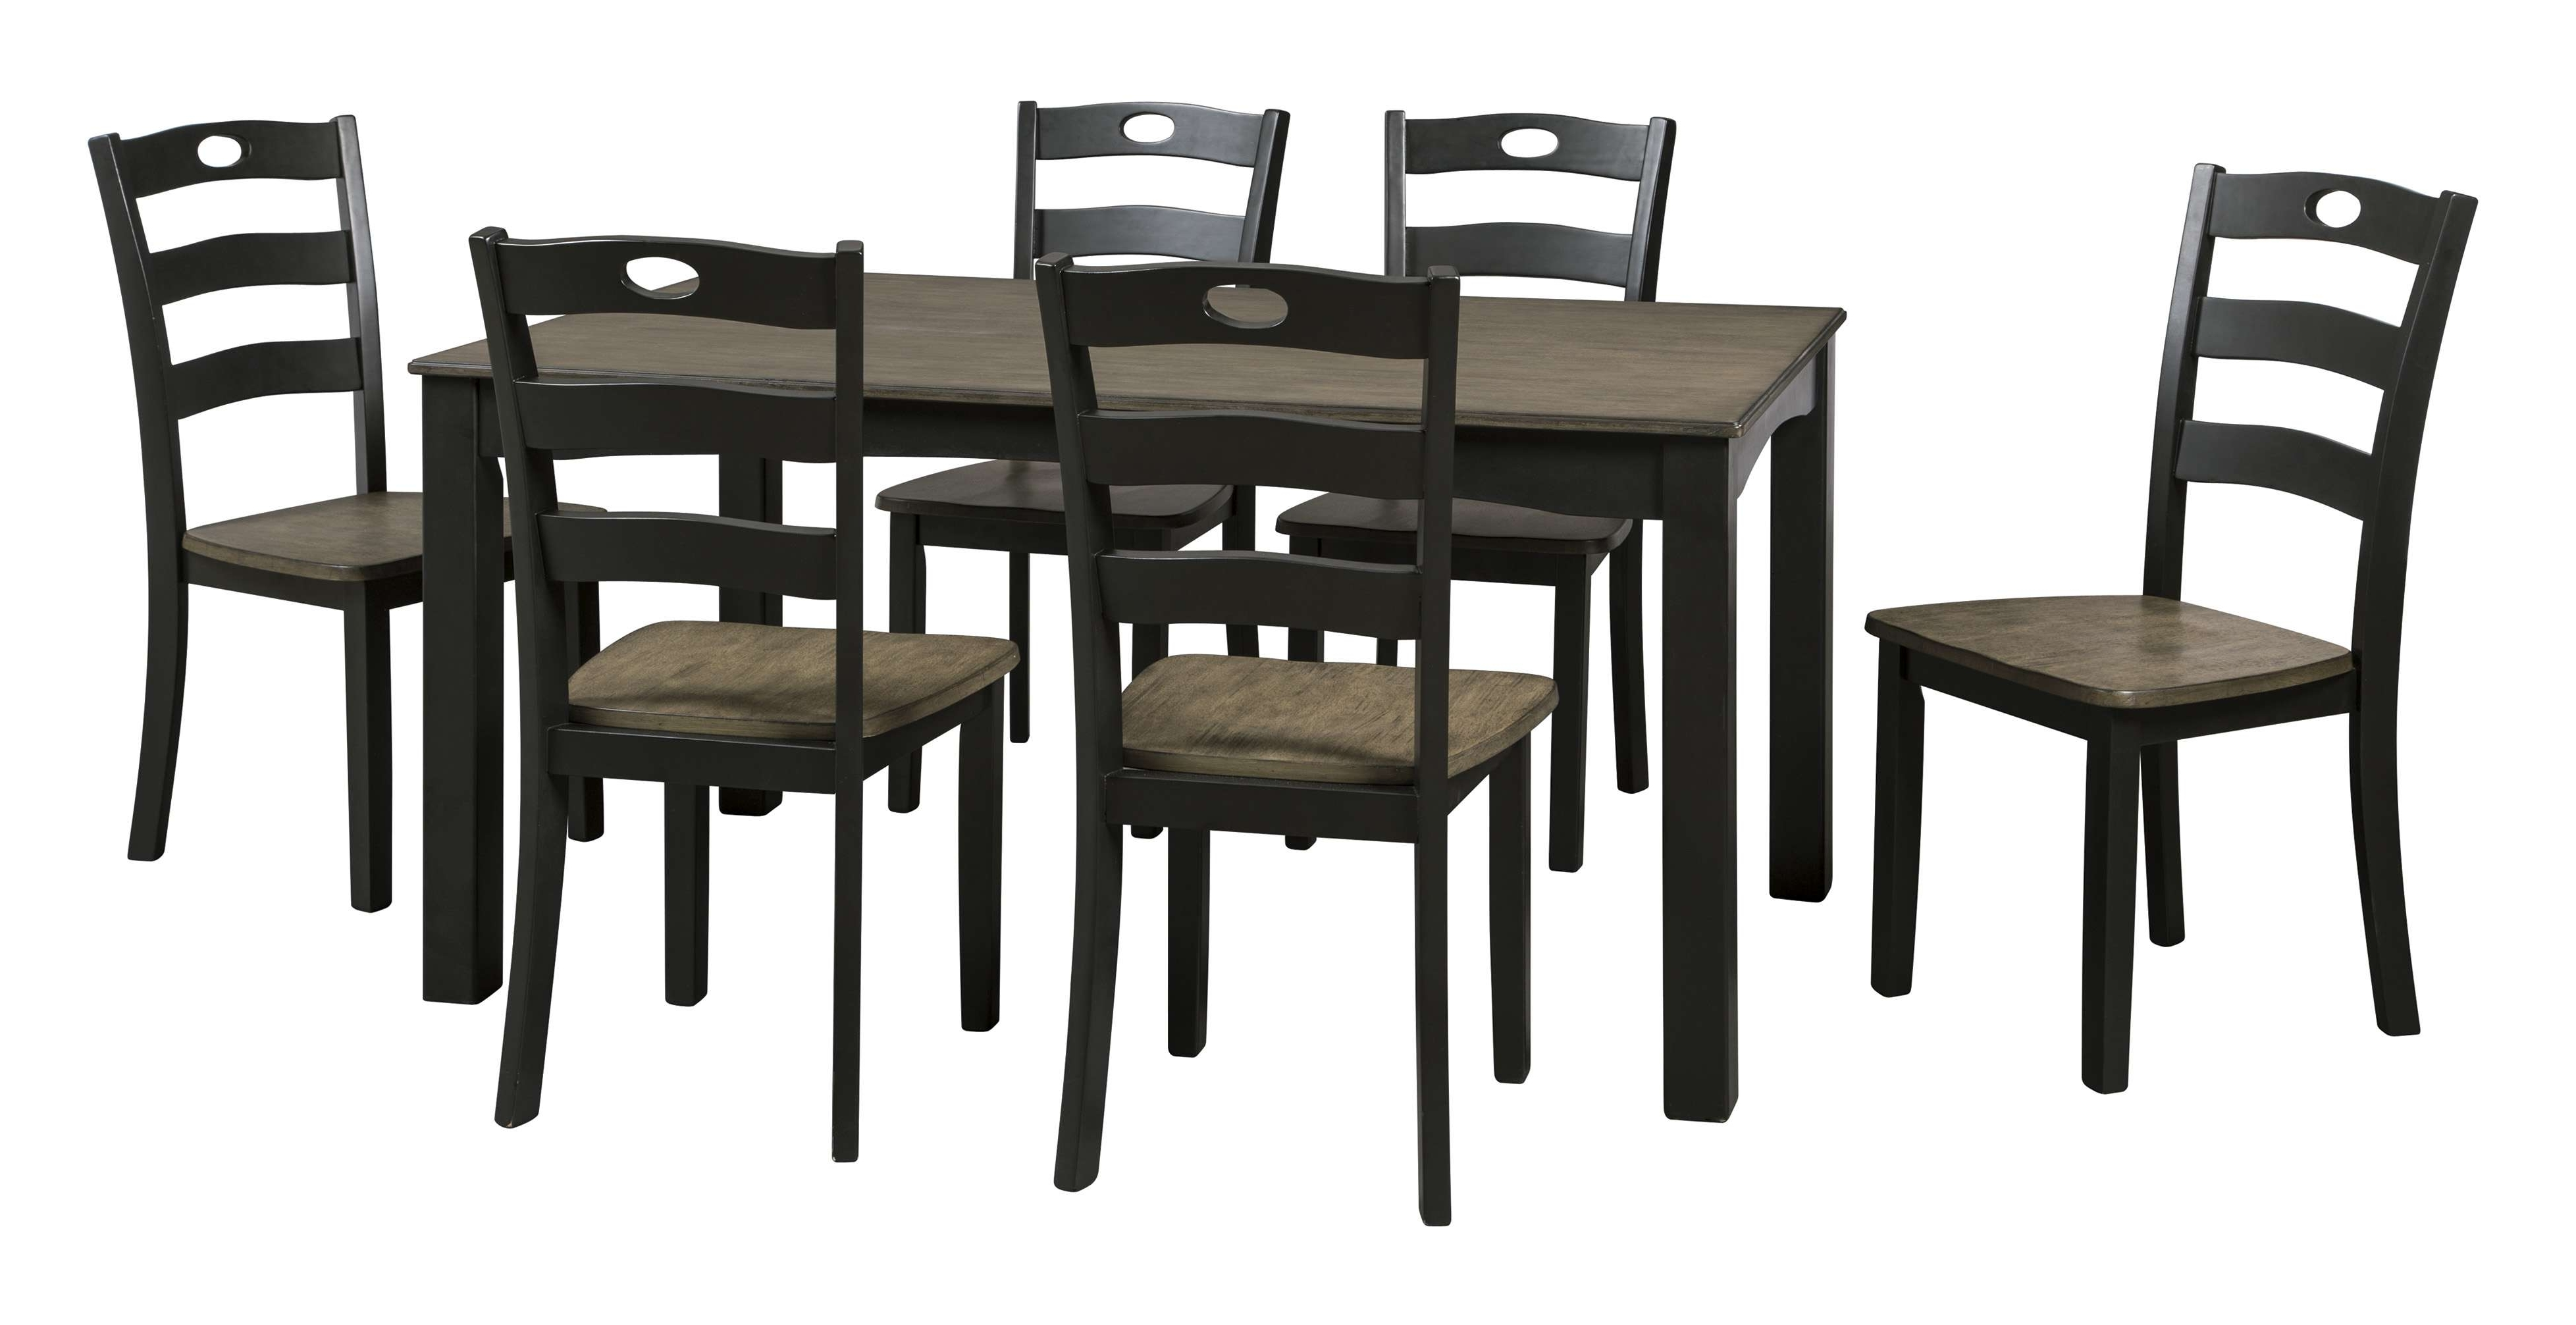 Signature Designashley Froshburg Grayish Brown & Black 7 Piece Within Well Known Jaxon 7 Piece Rectangle Dining Sets With Wood Chairs (View 24 of 25)